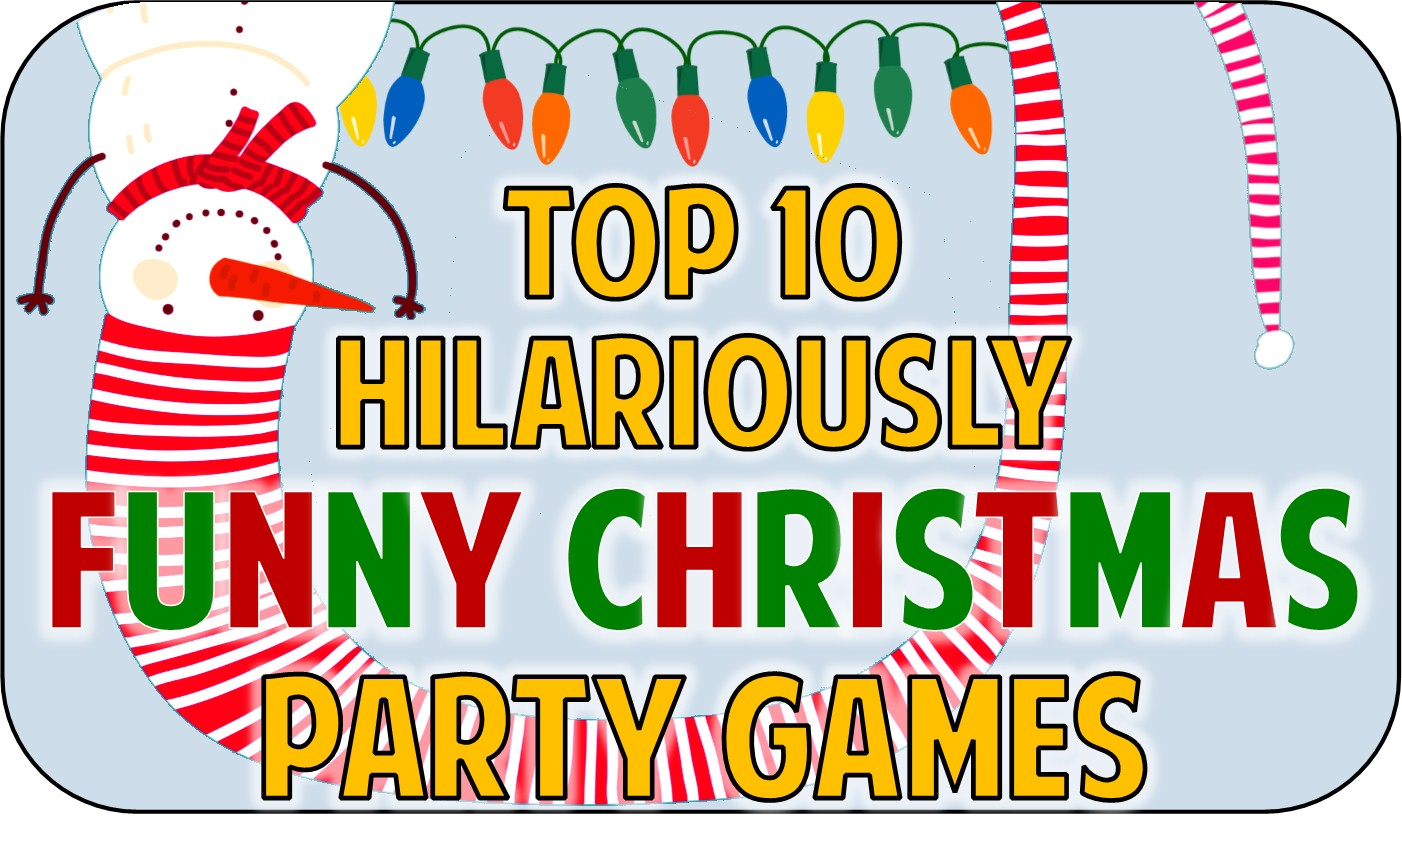 Modern Ny Party Game Ideas Party Ideas Adults Party Ideas Sheffield ideas Christmas Party Ideas